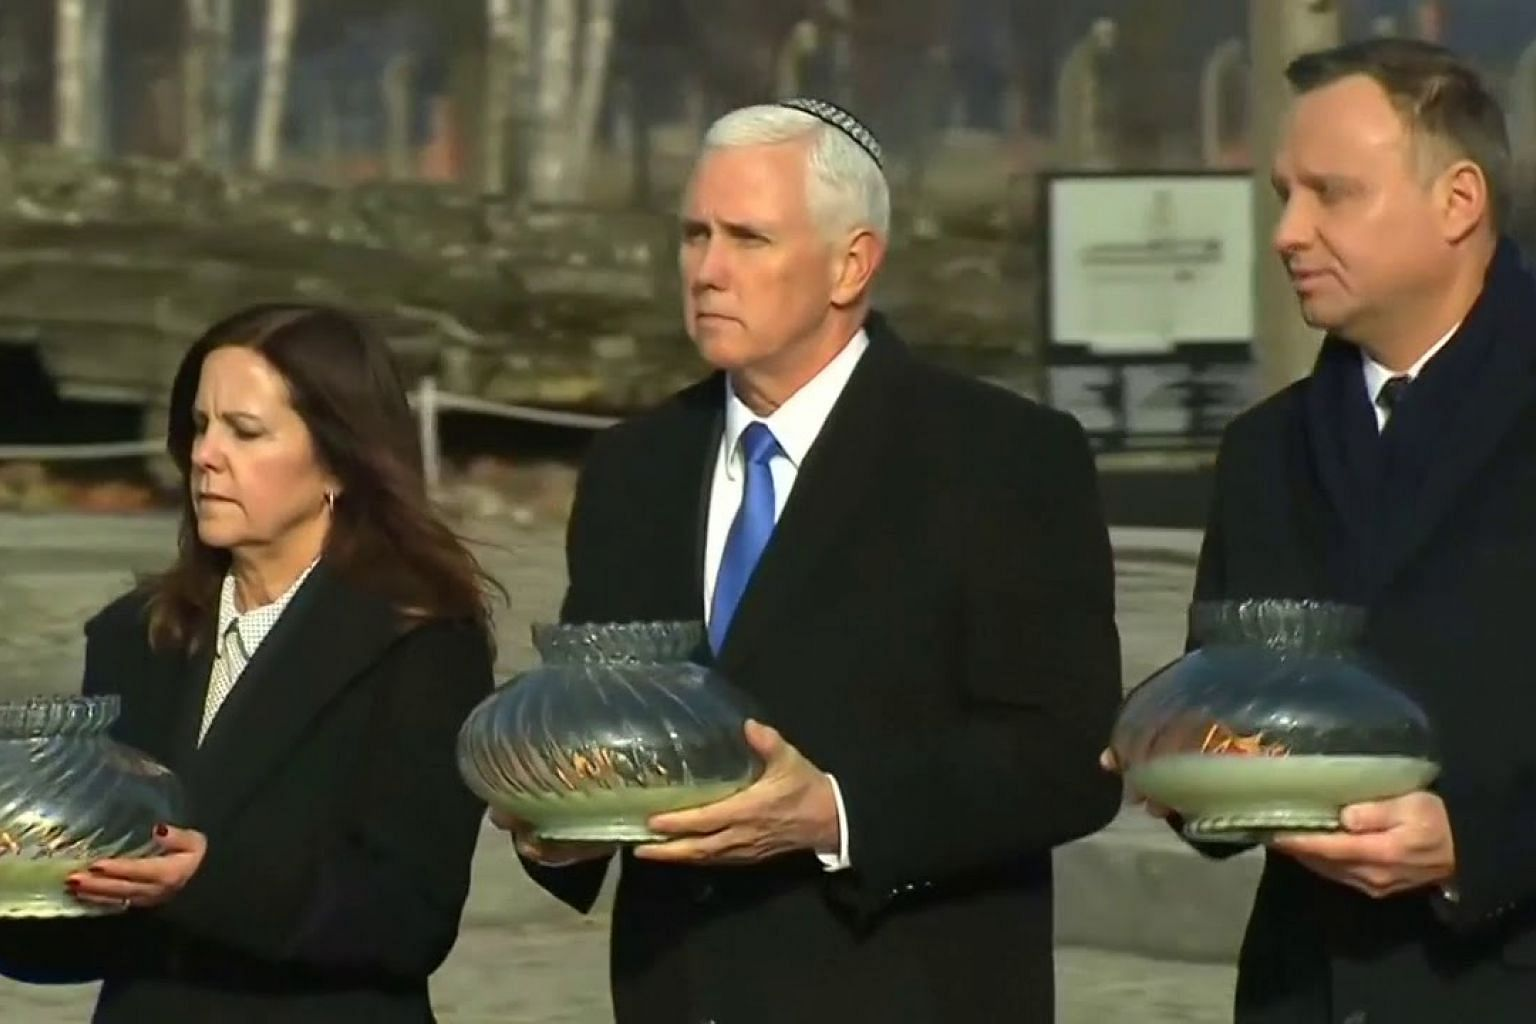 US Vice-President Mike Pence visits Auschwitz